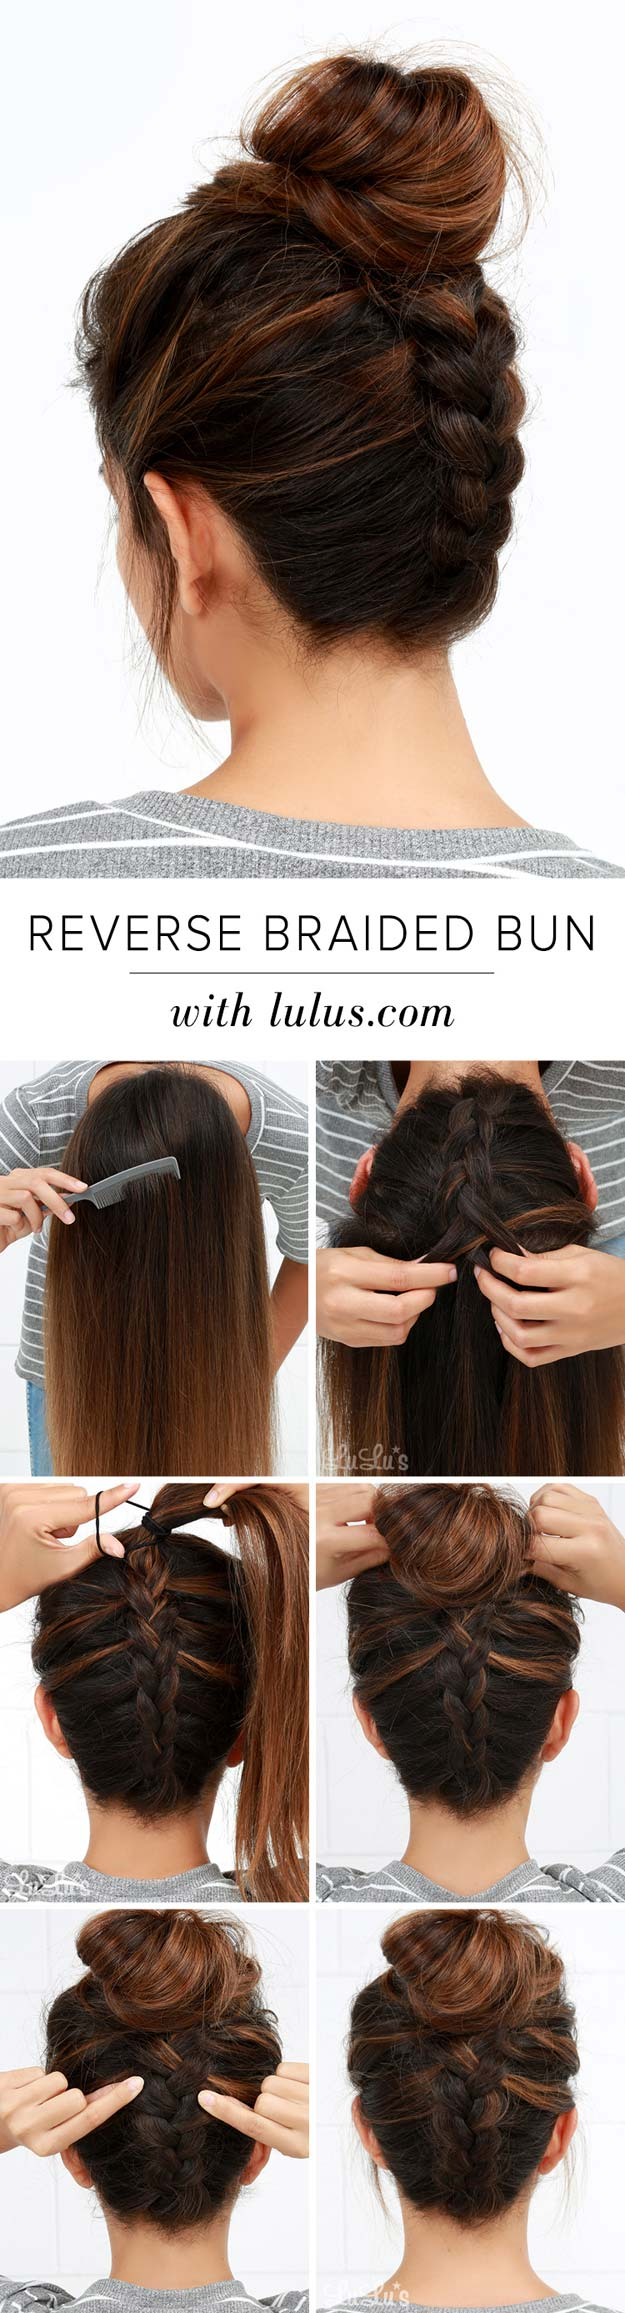 Best Hair Braiding Tutorials - Reverse Braided Bun Hair Tutorial - Easy Step by Step Tutorials for Braids - How To Braid Fishtail, French Braids, Flower Crown, Side Braids, Cornrows, Updos - Cool Braided Hairstyles for Girls, Teens and Women - School, Day and Evening, Boho, Casual and Formal Looks #hairstyles #braiding #braidingtutorials #diyhair